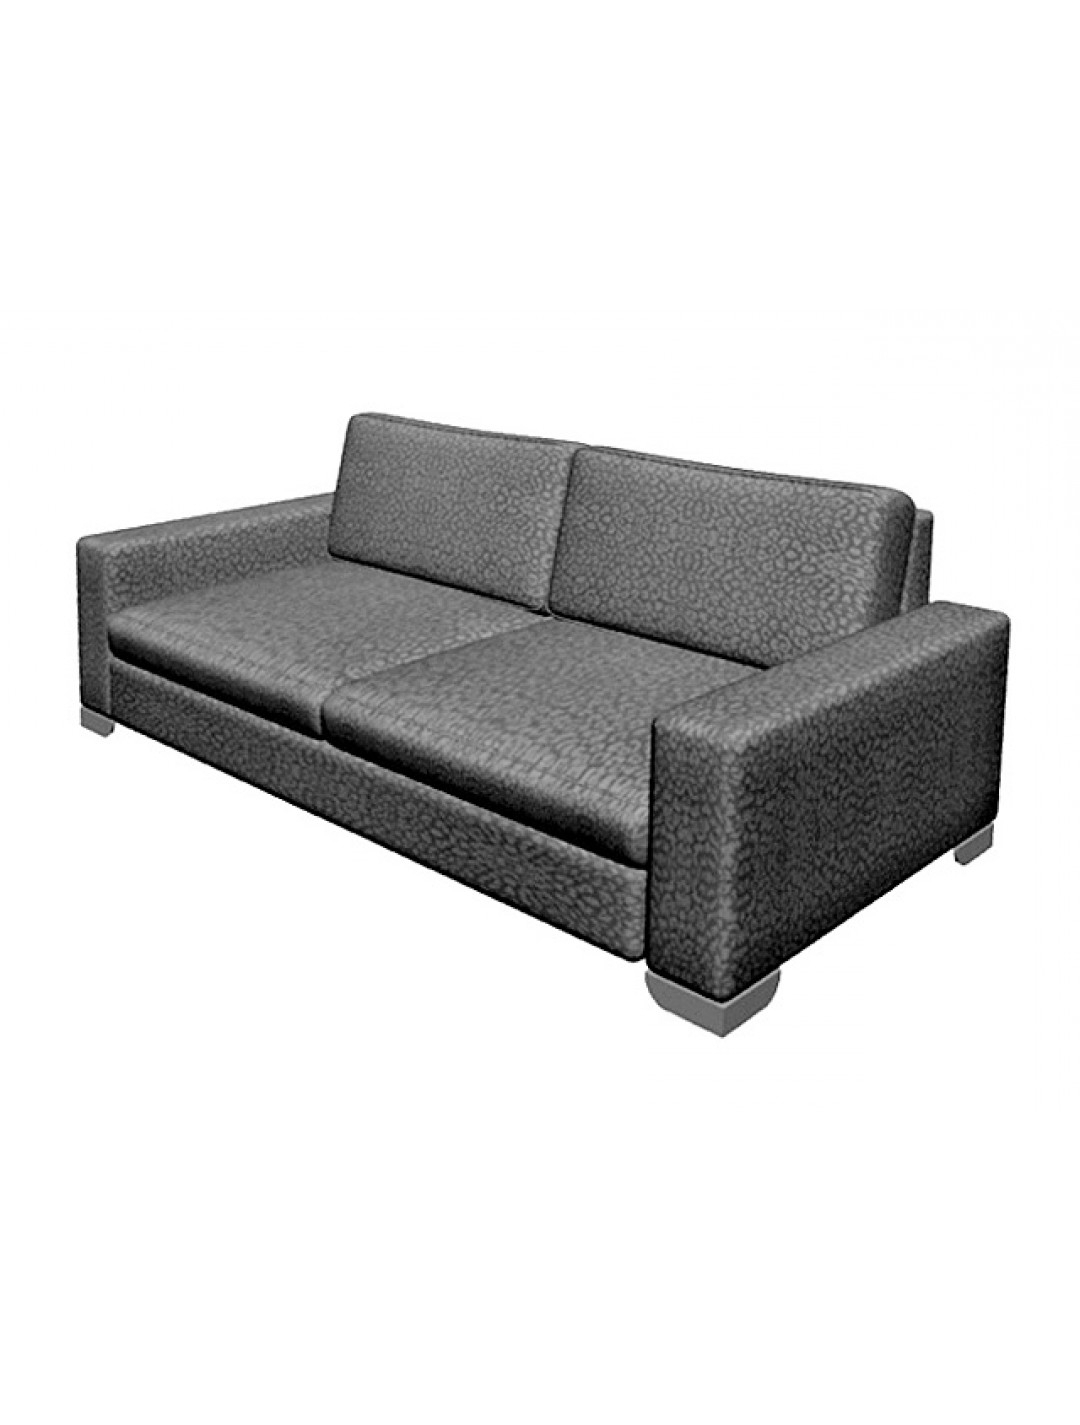 Orson 100 2 Seater Sofa , Upholstery: Without Fabric Regarding Famous Orsen Tv Stands (View 4 of 25)